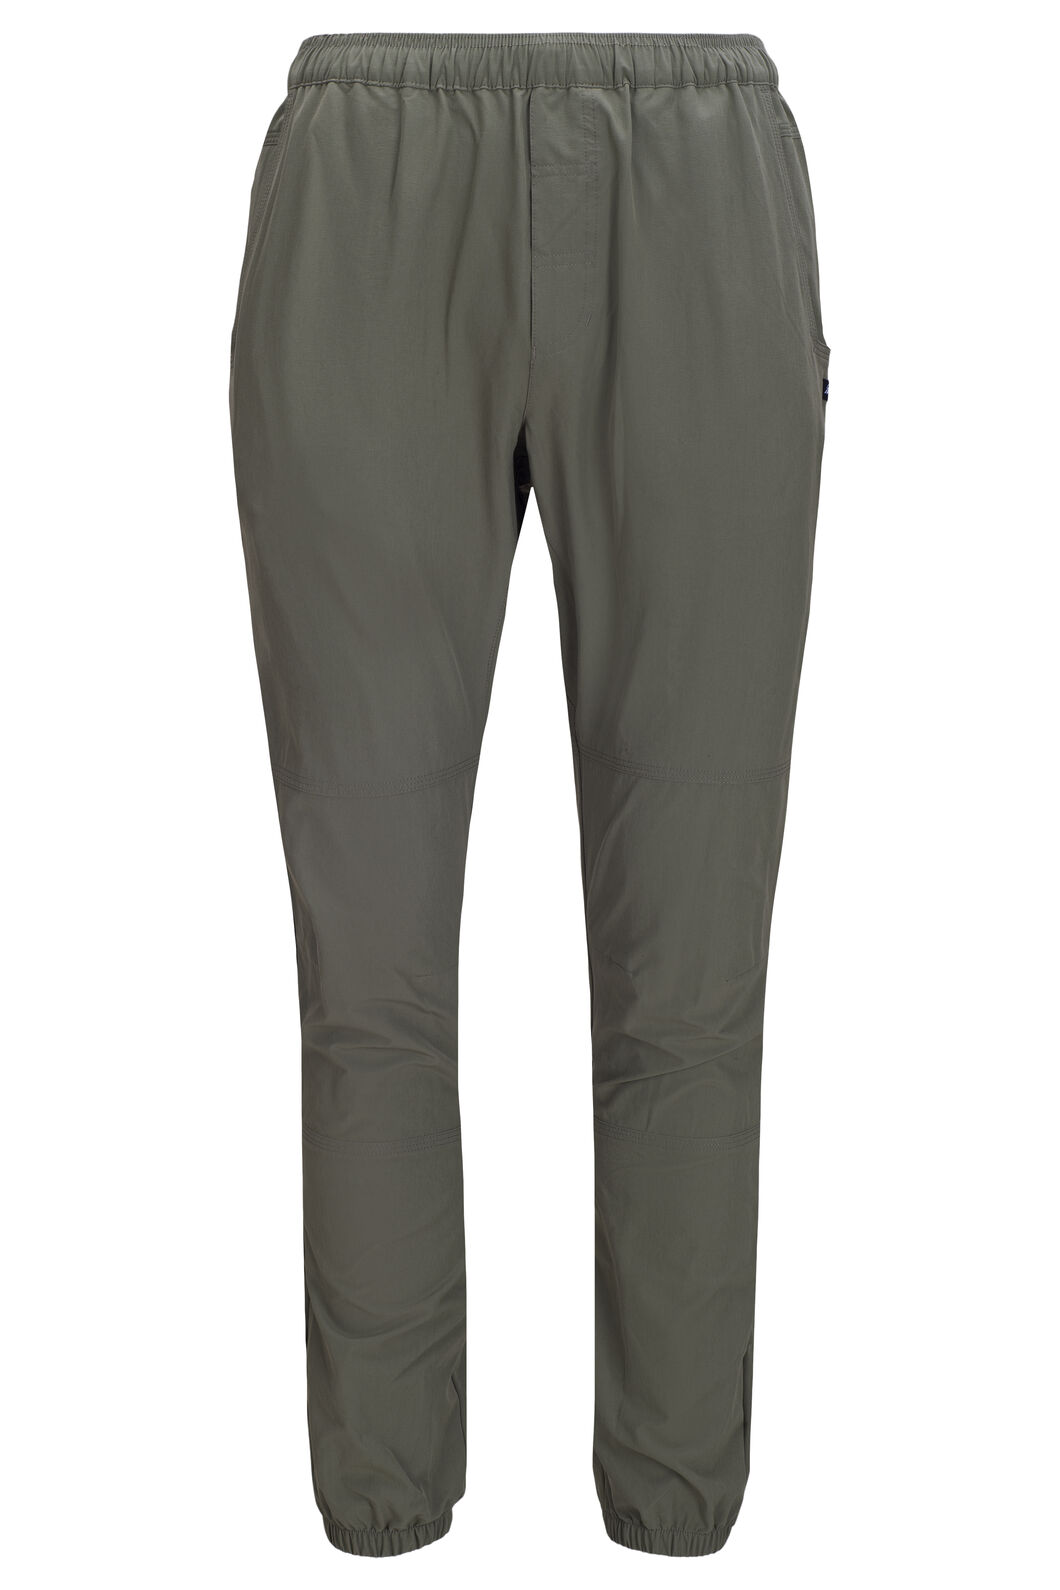 Macpac Boulder Pants — Men's, Deep Lichen Green, hi-res